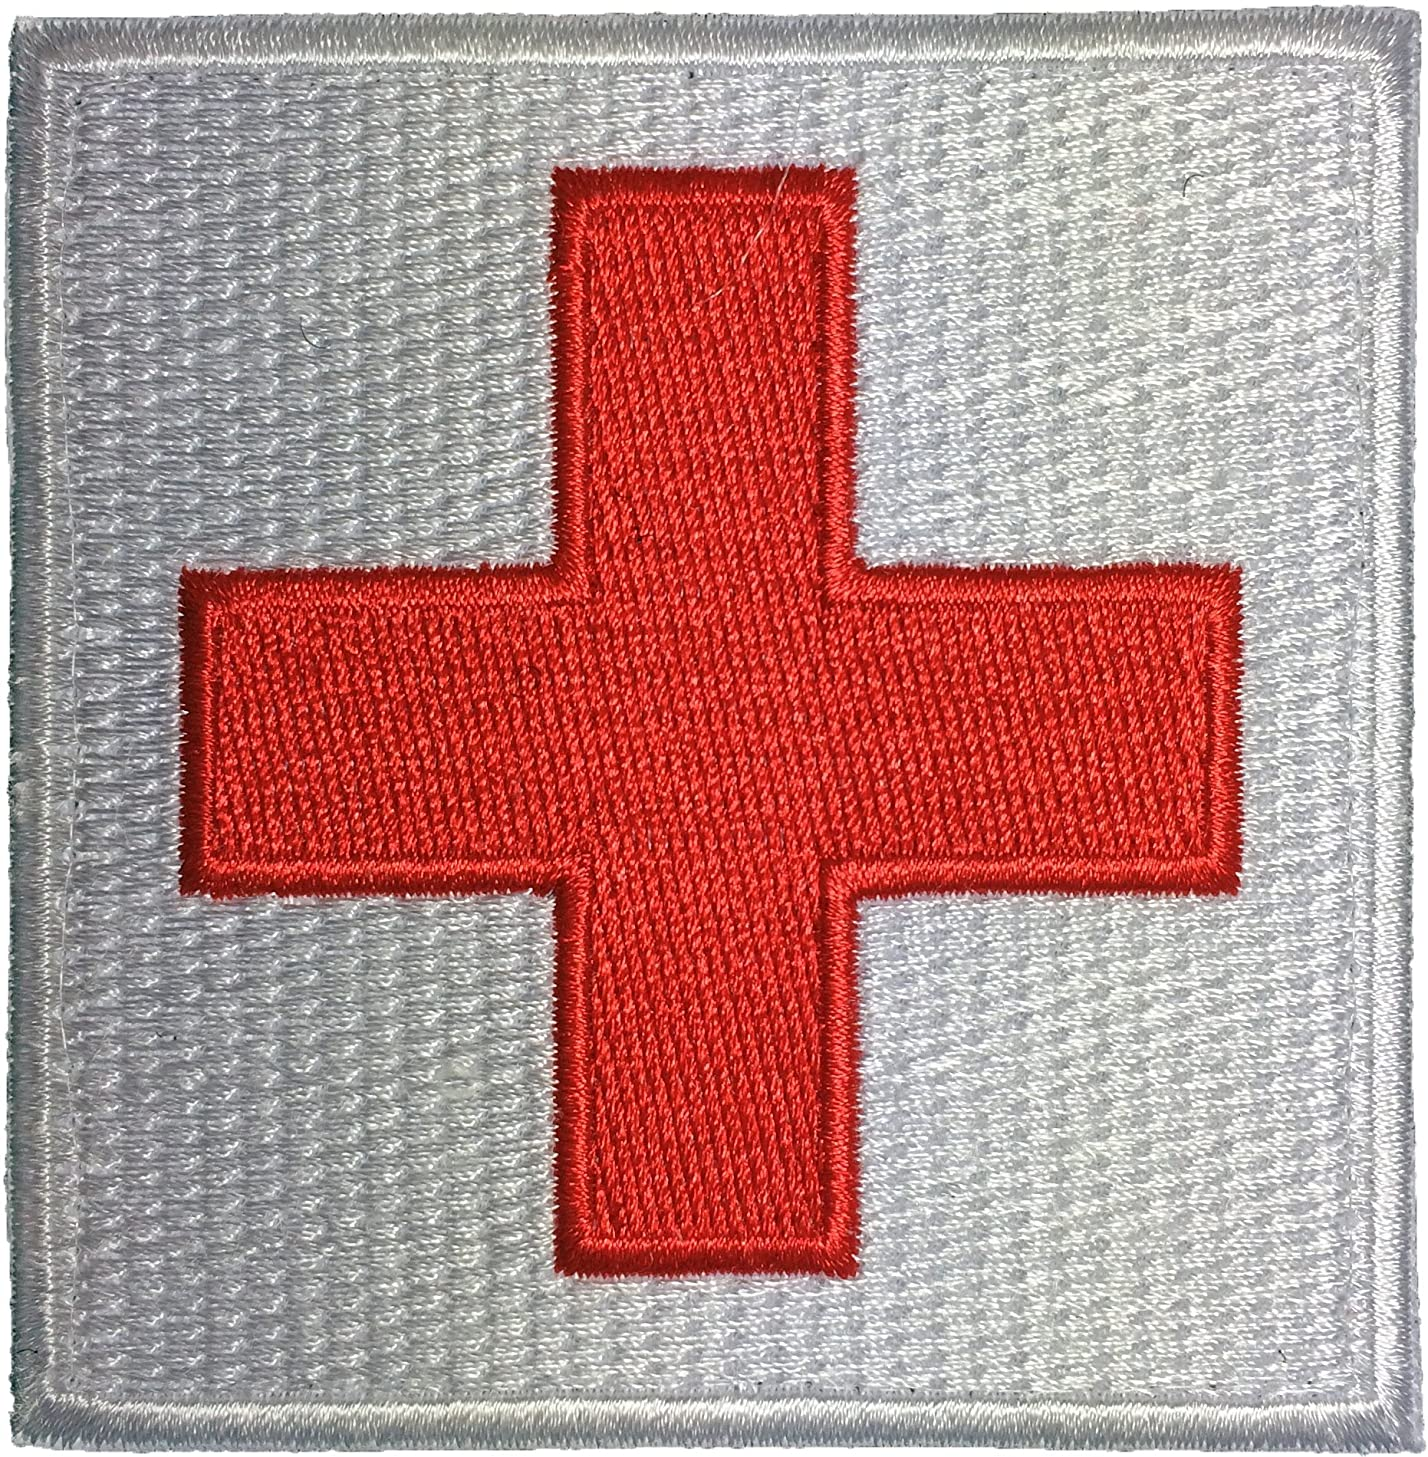 Tactical Medic Red Cross Patch Hook and Loop Fasteners Backing 3